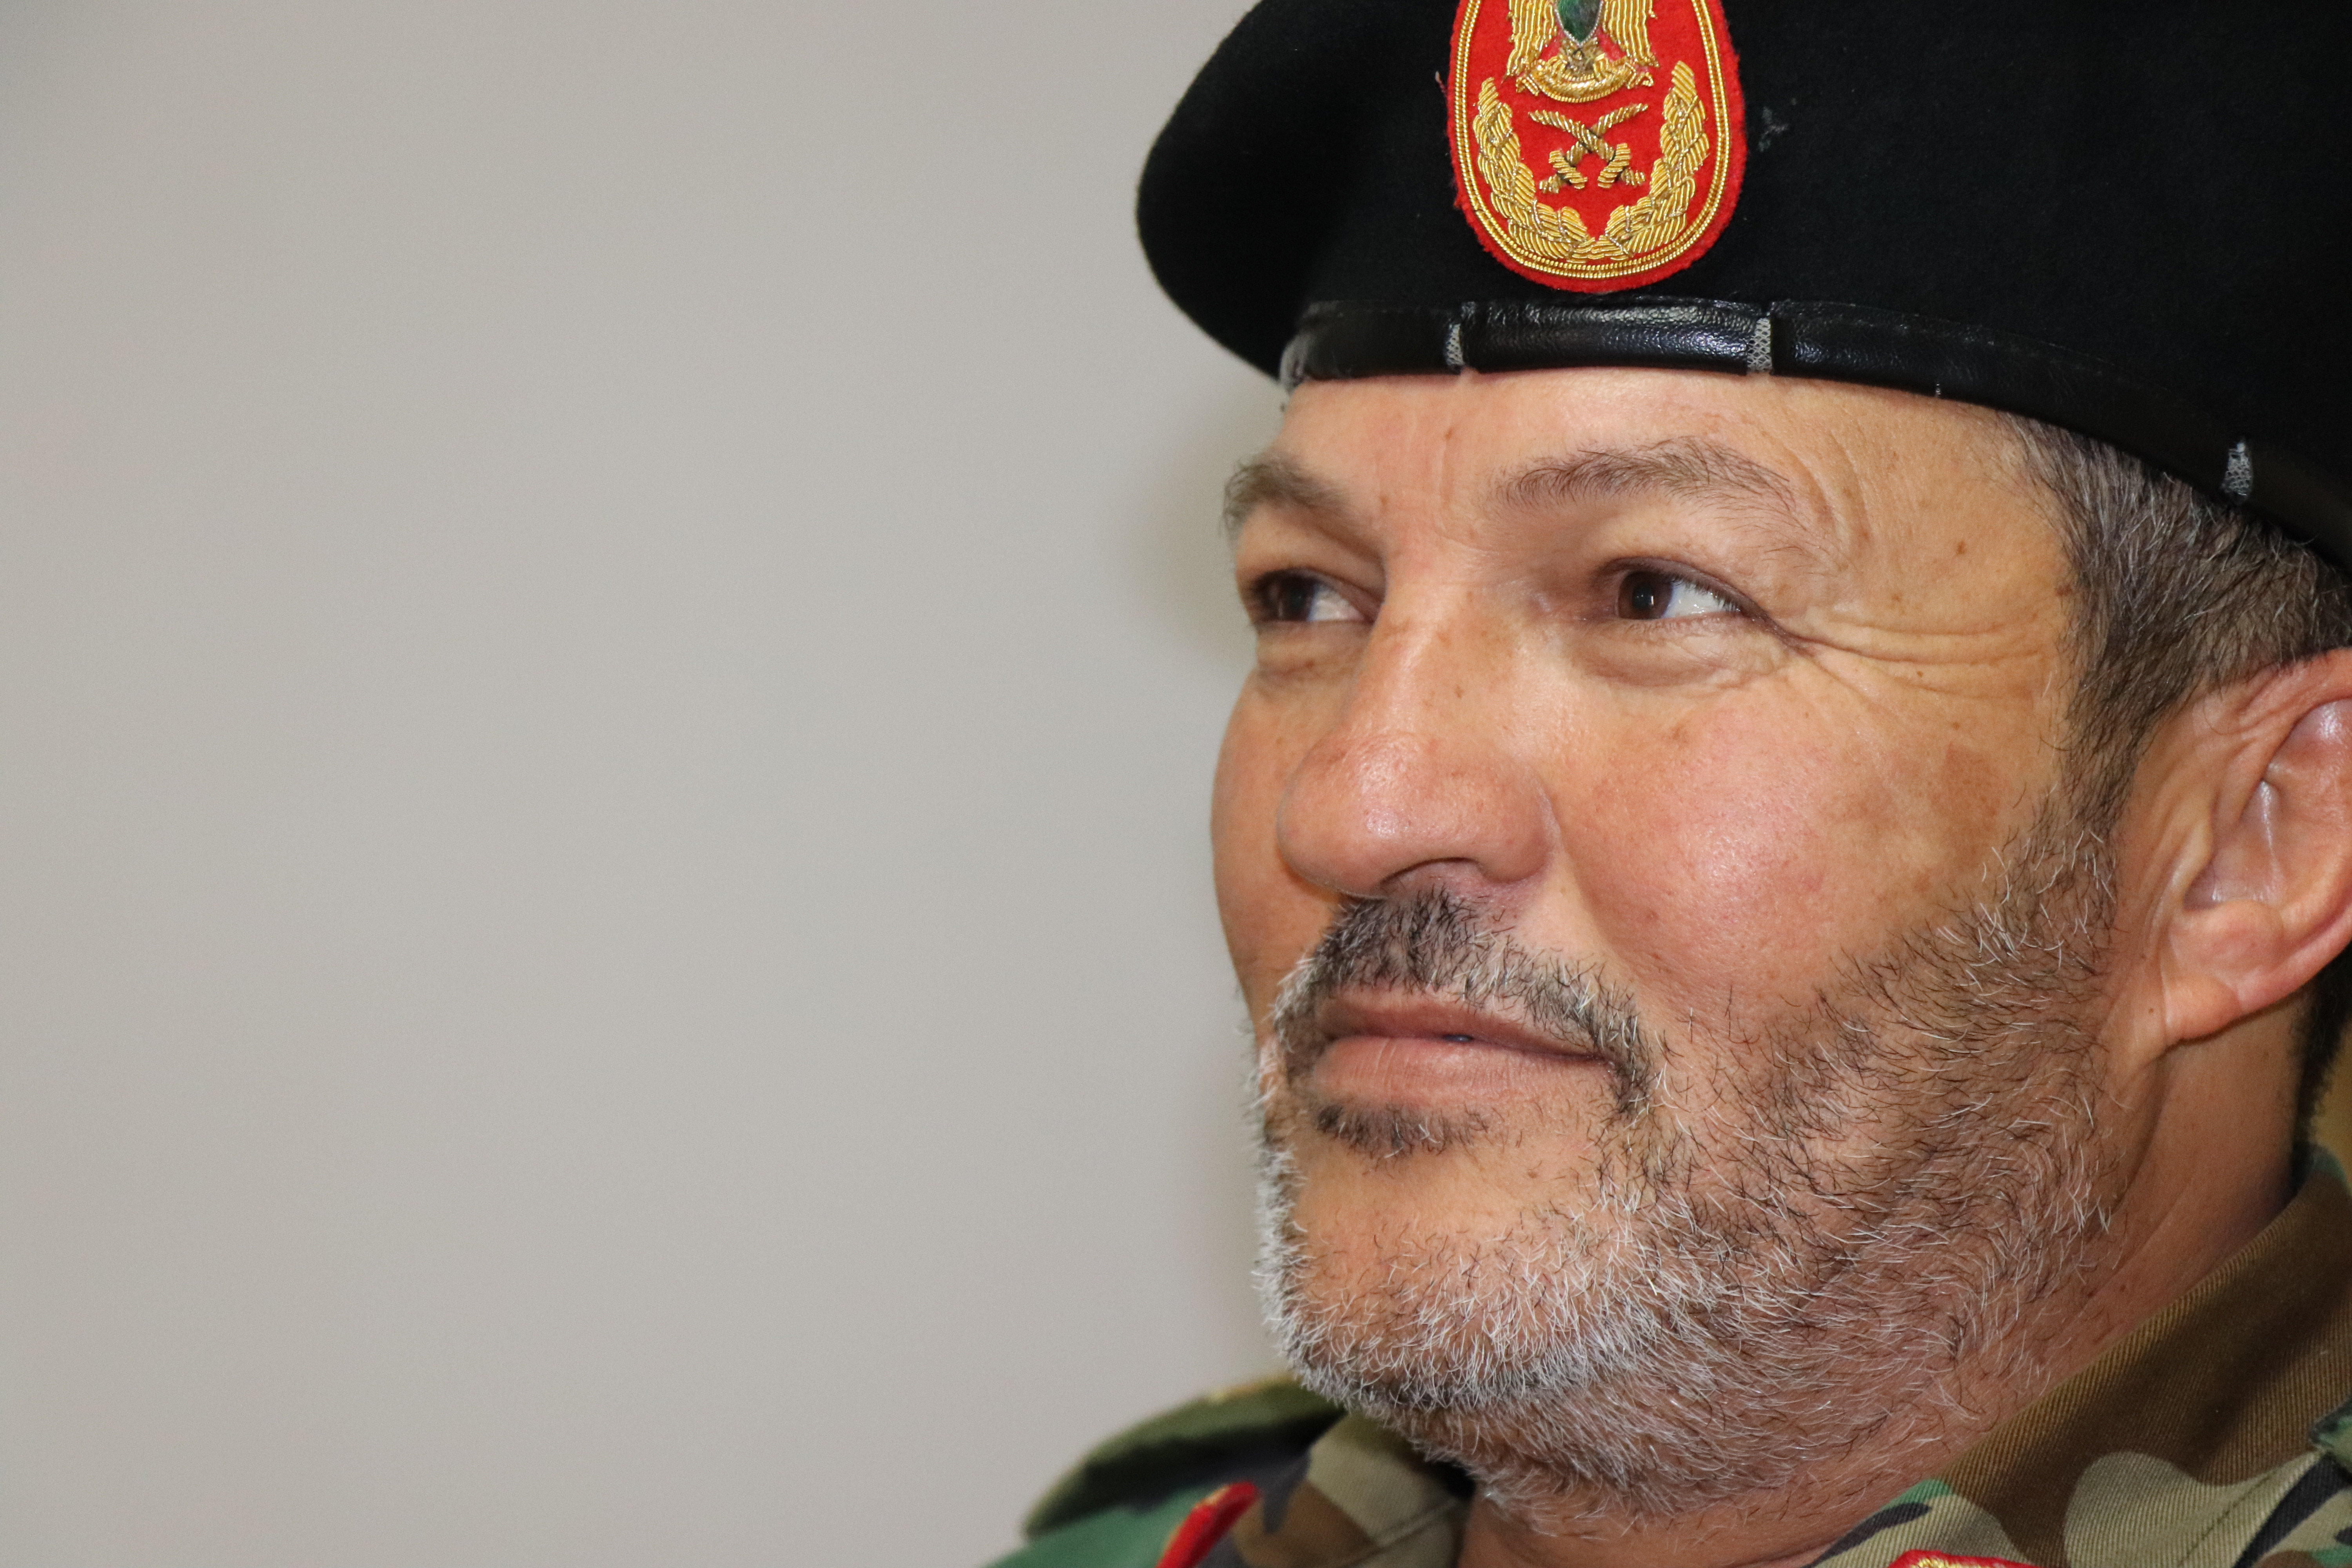 Abdul Basset Marwan, commander of the Tripoli Military Area, says he had high hopes for peace talks before the assault on Tripoli began in early last month. He spoke April 29, 2019, in Tripoli, Libya